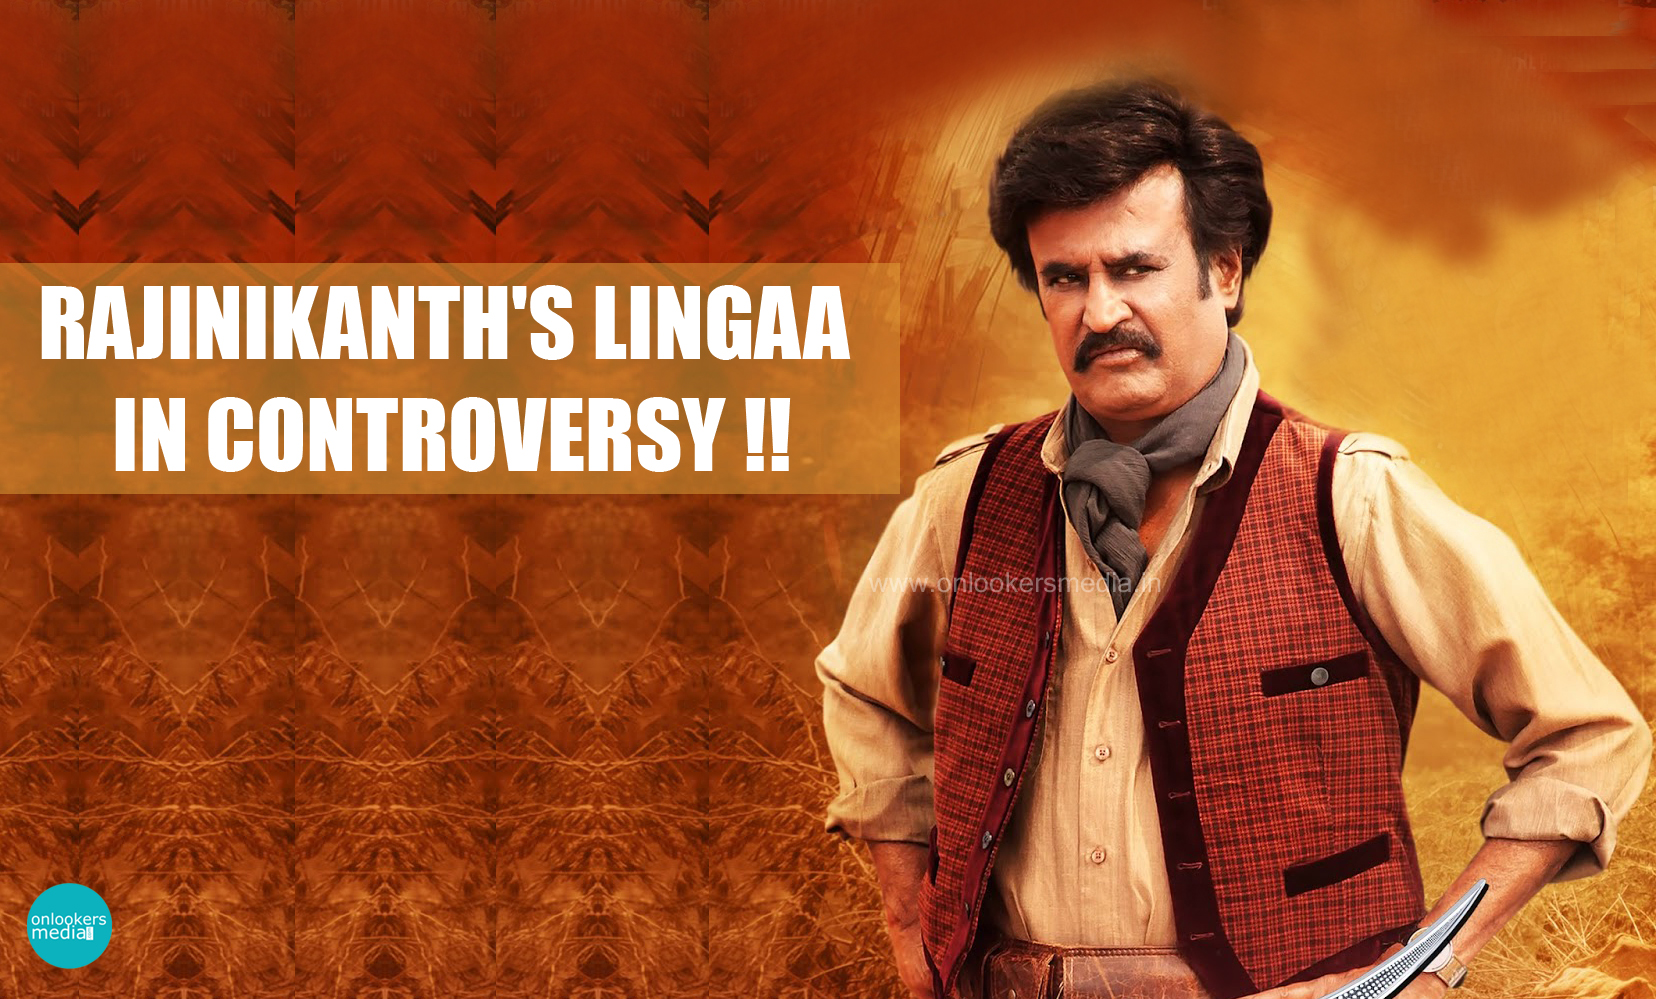 Rajinikanth's Lingaa in controversy-Mullaperiyar issue-Lingaa Review-Report-Collection-Sonakshi Sinha-Onlookers Media